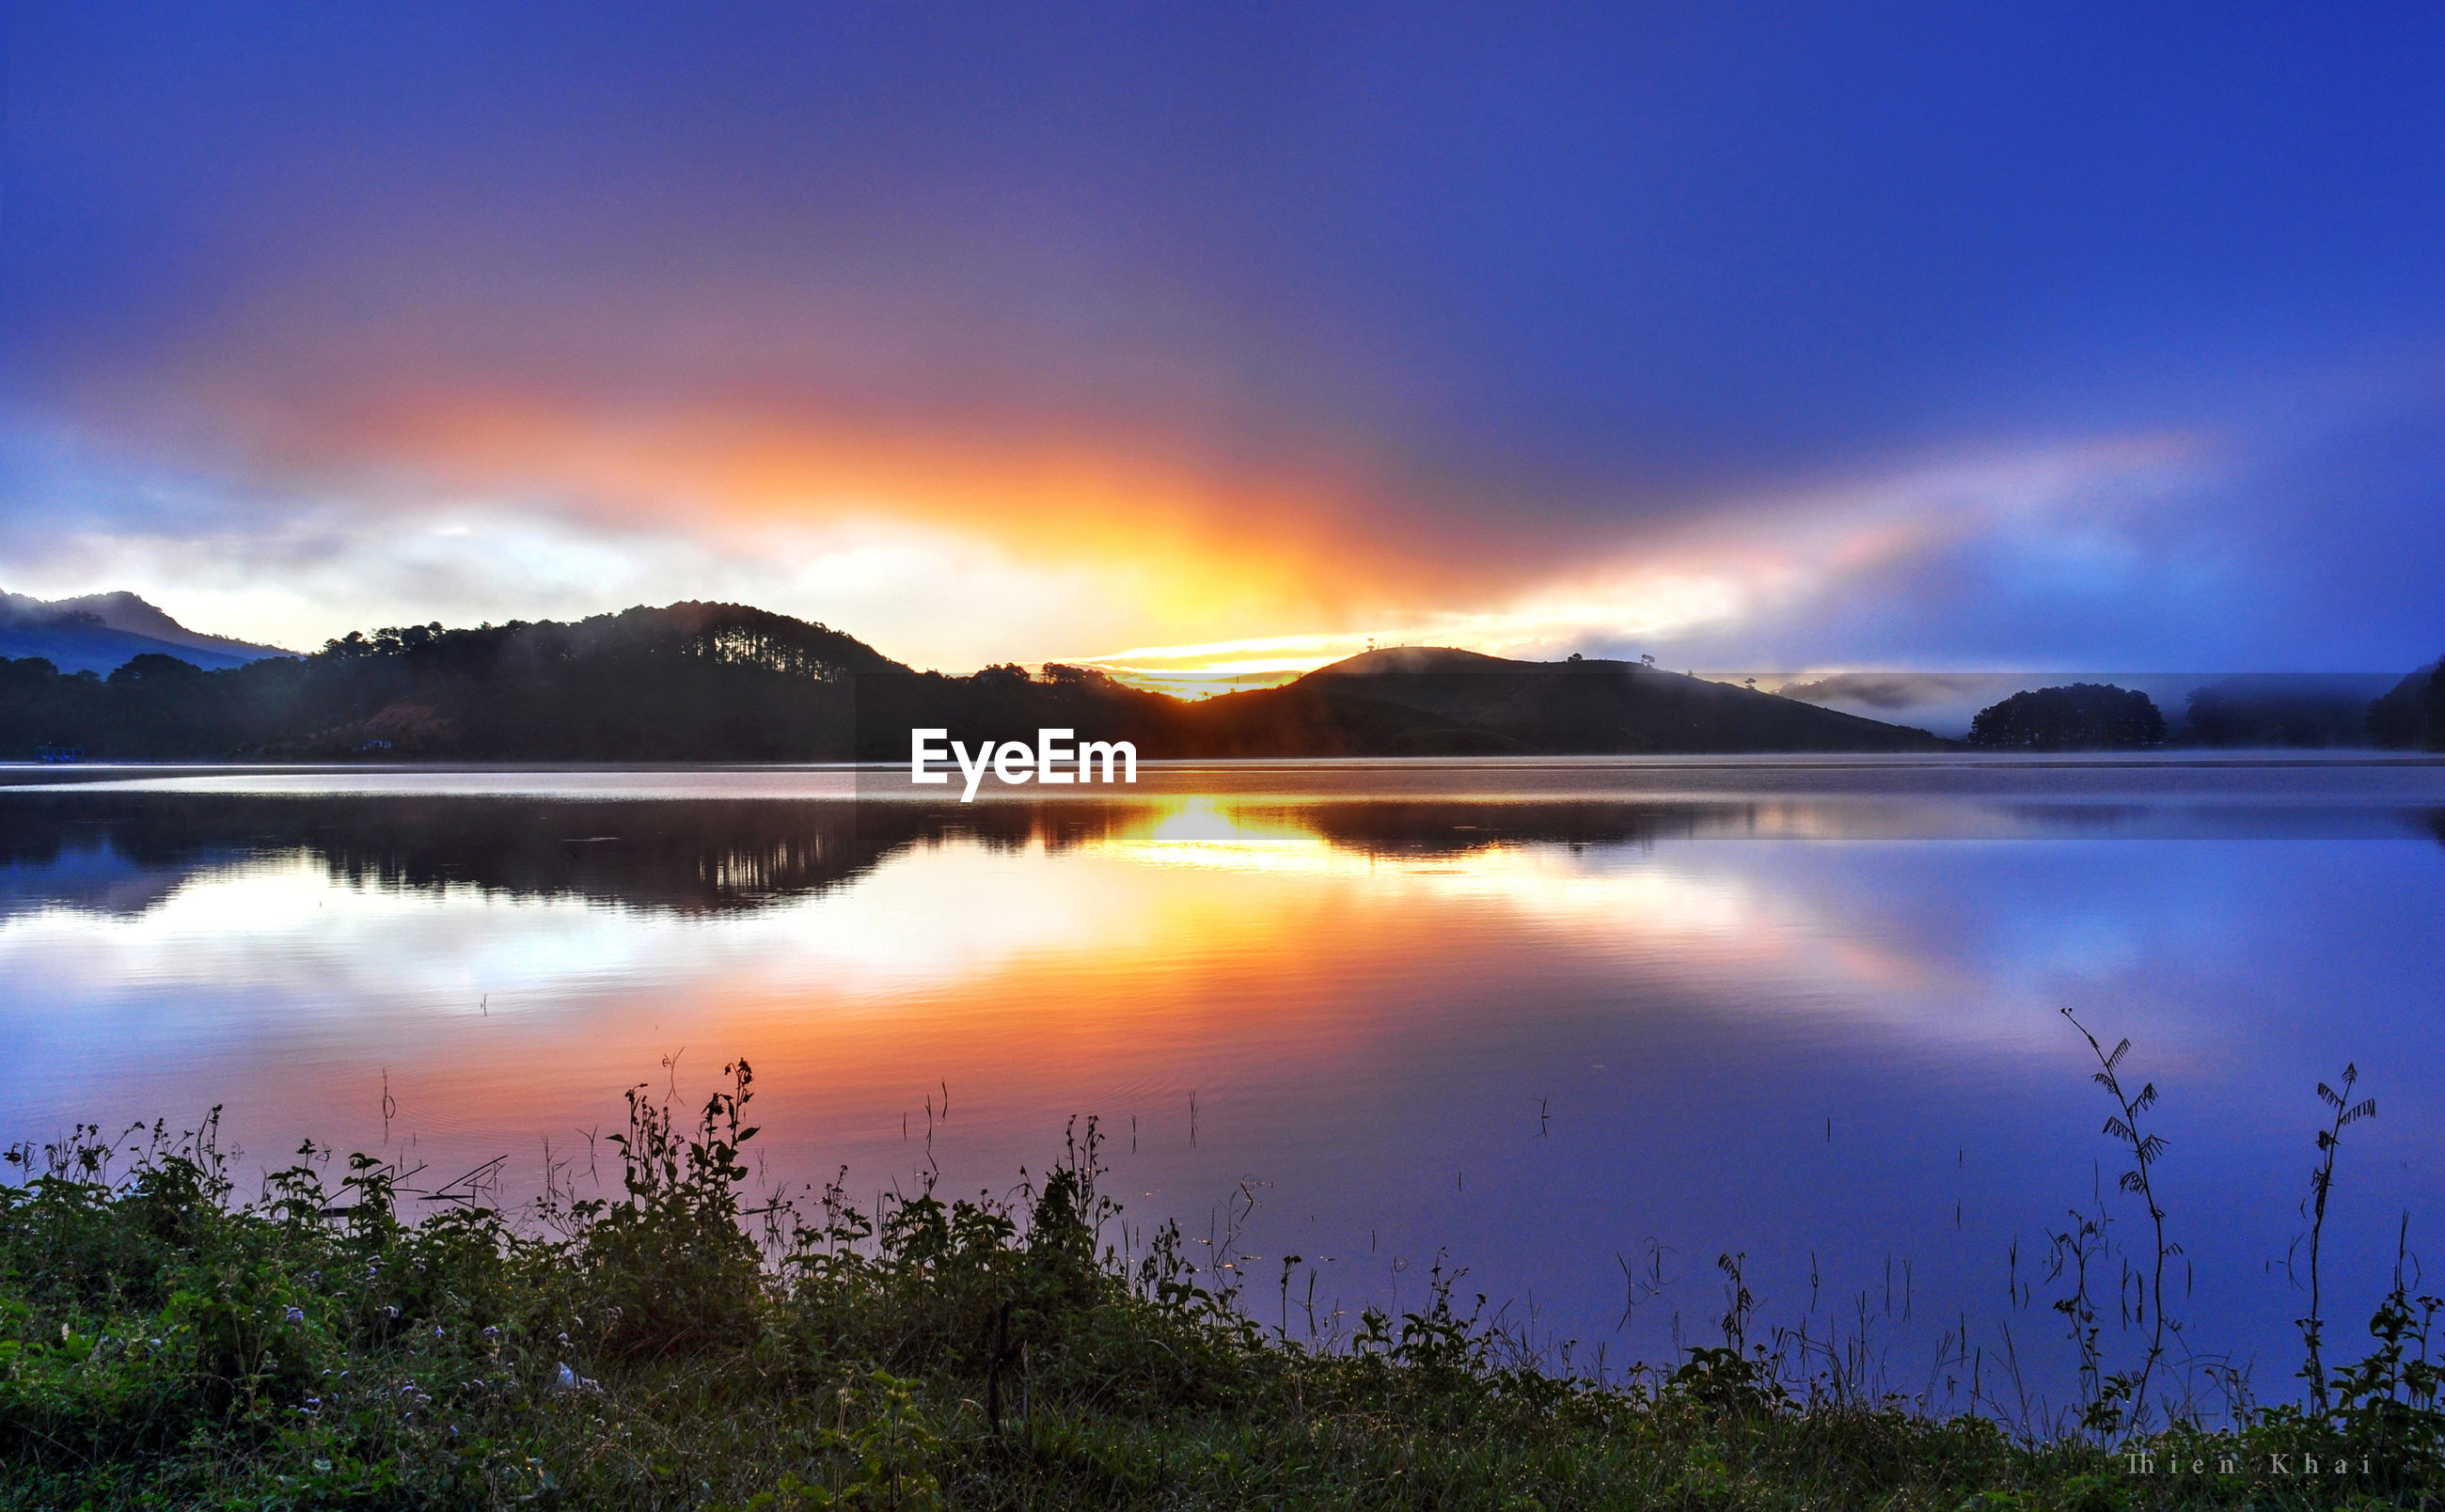 SCENIC VIEW OF LAKE BY SILHOUETTE MOUNTAINS AGAINST SKY AT SUNSET